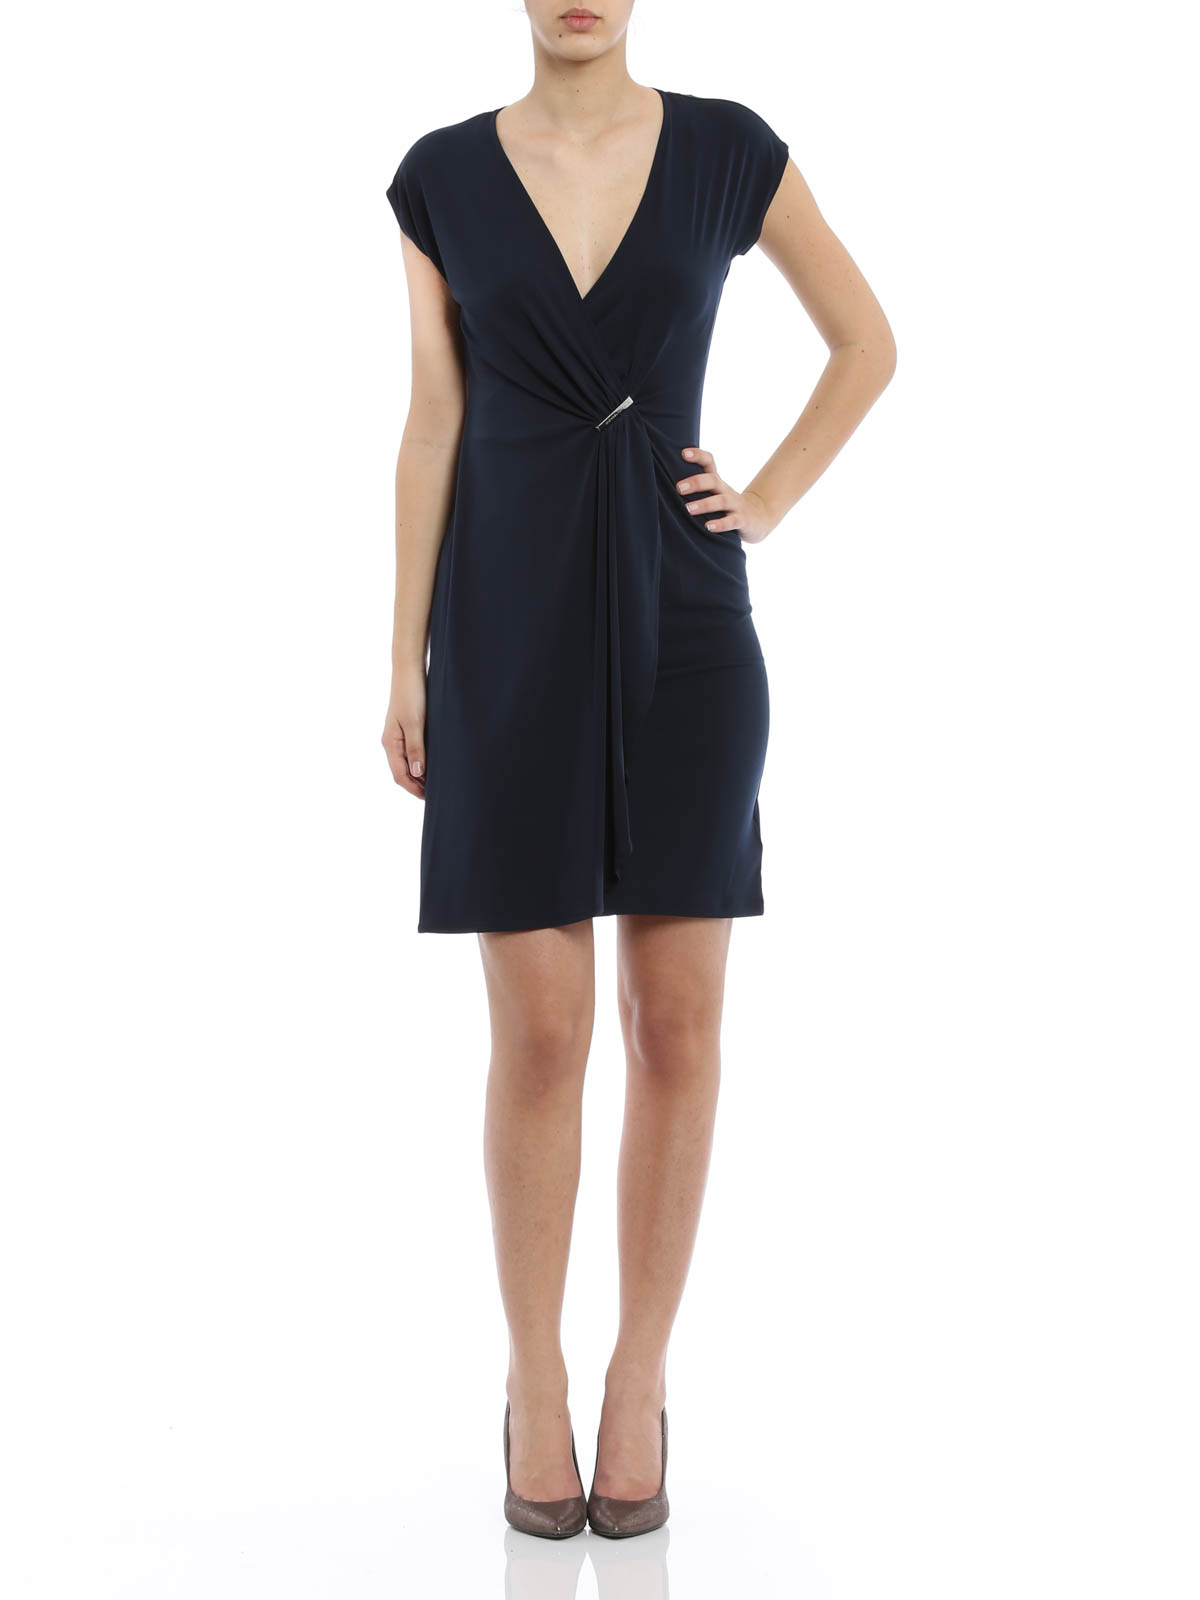 MICHAEL Michael Kors - Mesh Fit-&-Flare Dress fovlgbllfacuk.ga, offering the modern energy, style and personalized service of Saks Fifth Avenue stores, in an enhanced, easy-to-navigate shopping experience.